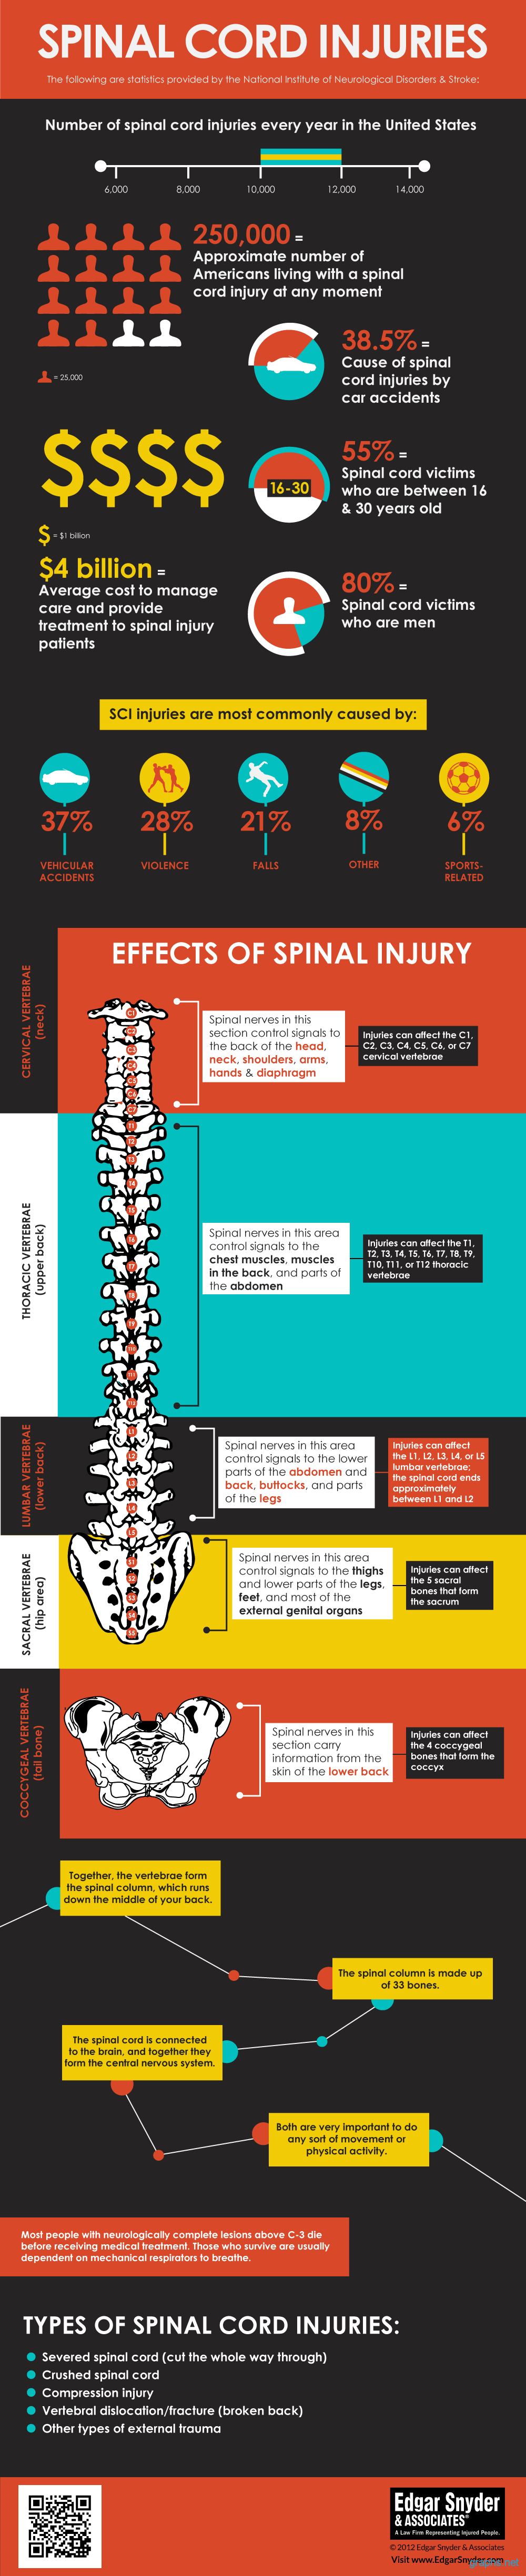 Spinal Cord Injuries in America